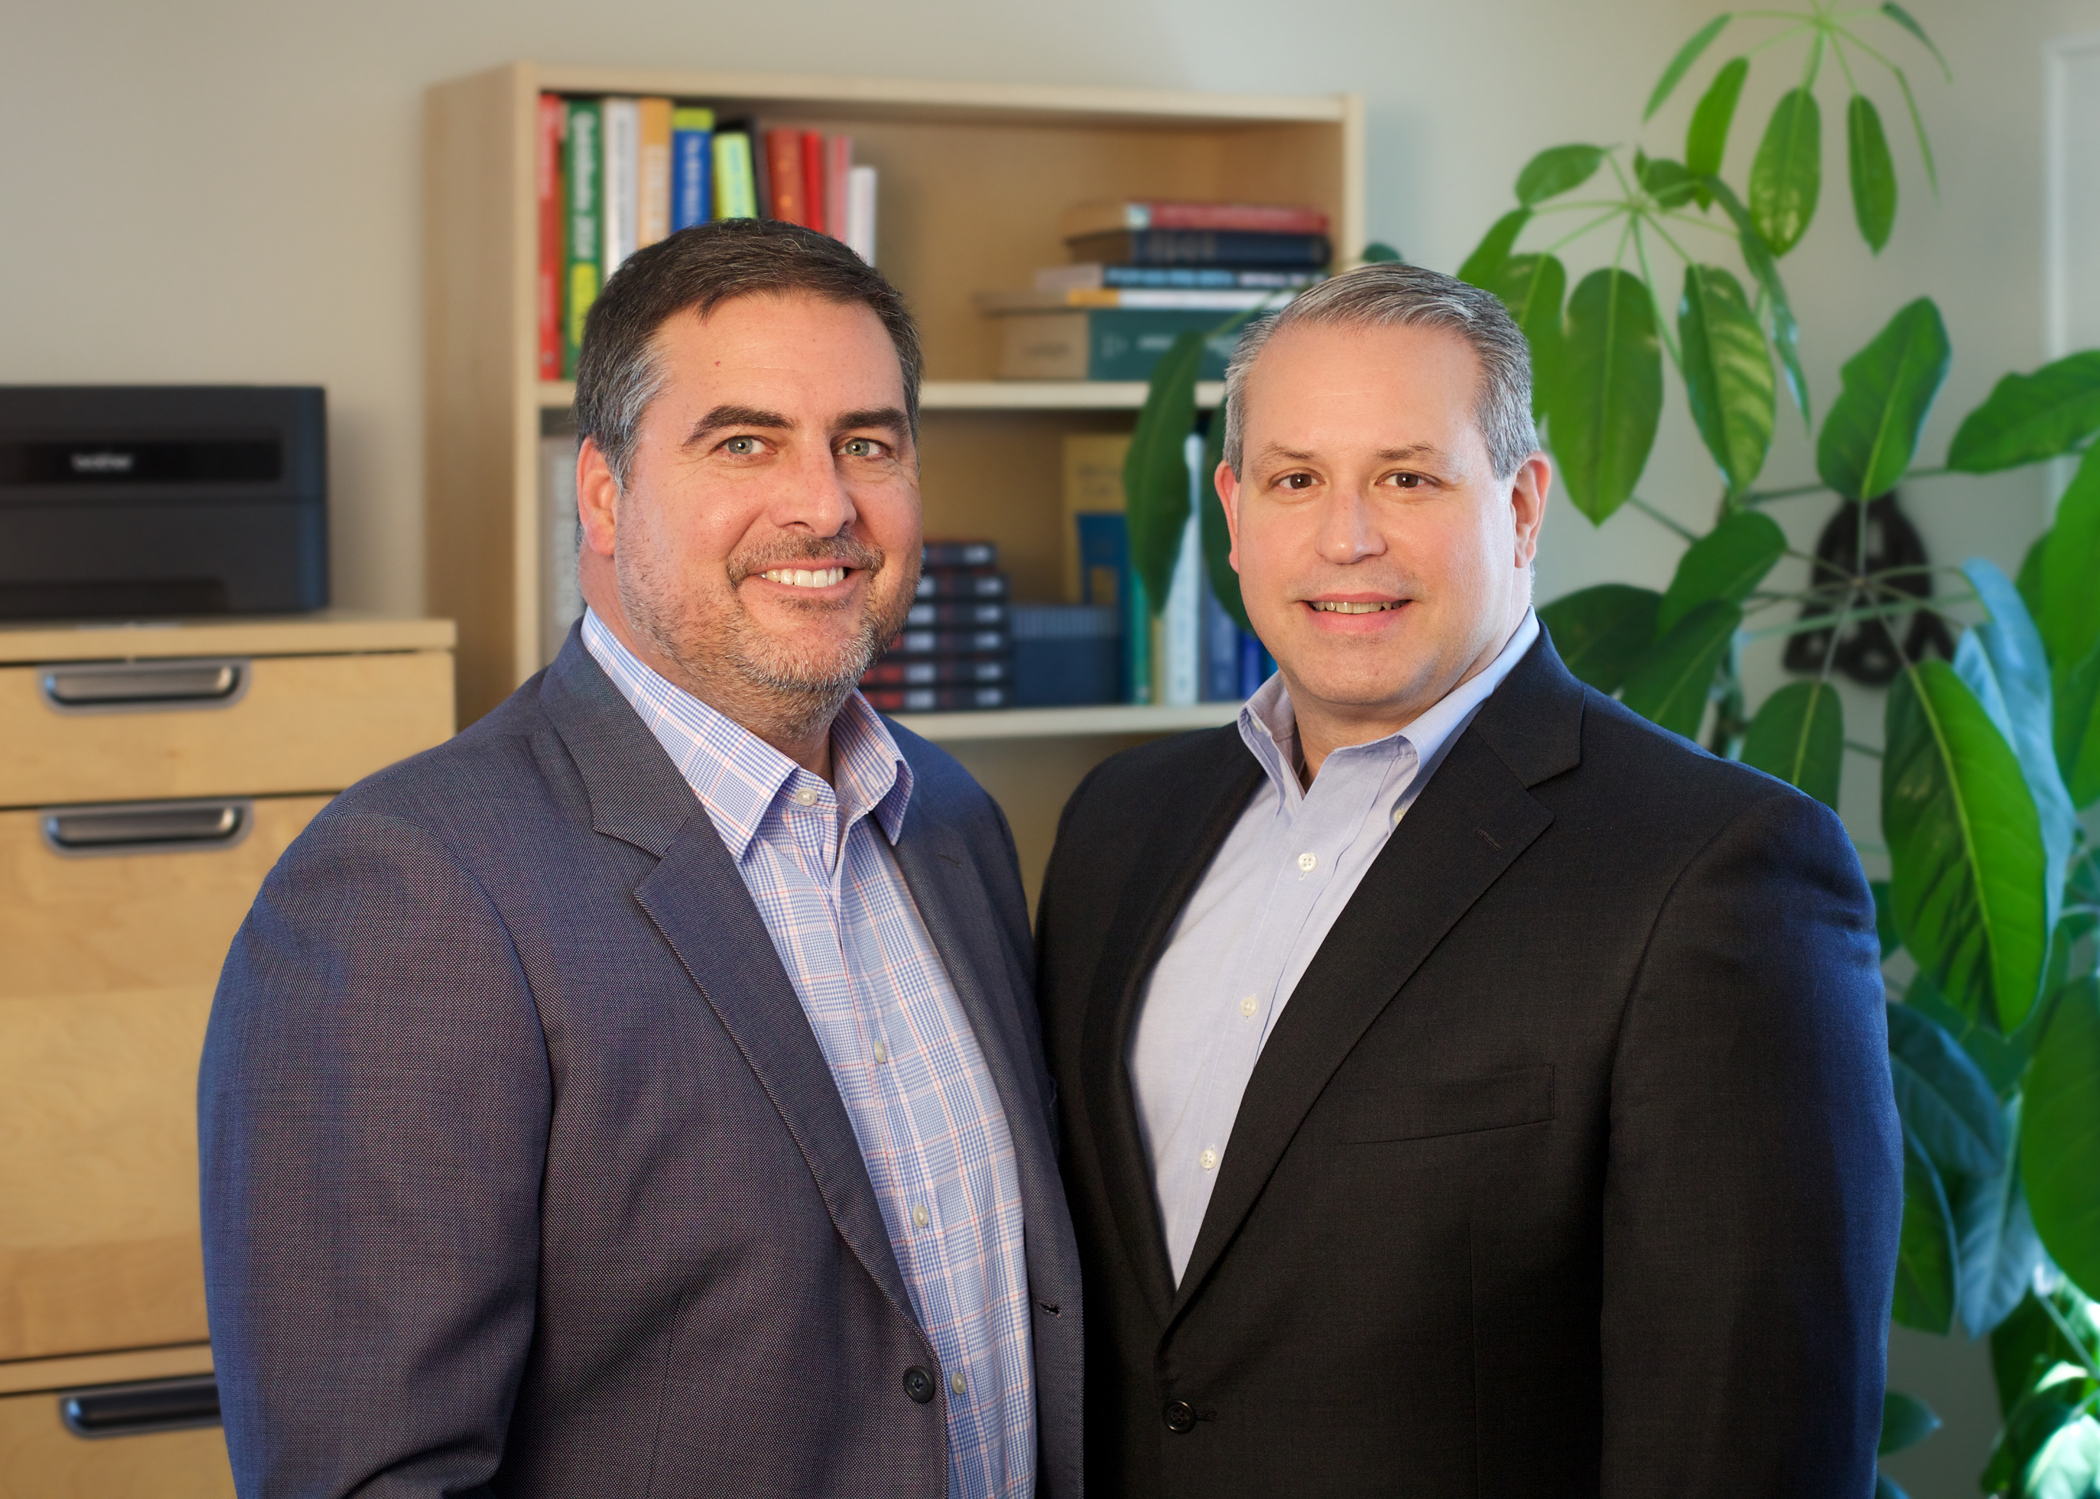 Jason Ward (L) and Patrick Ference (R), Industrial Search Partners (Photo: Business Wire)